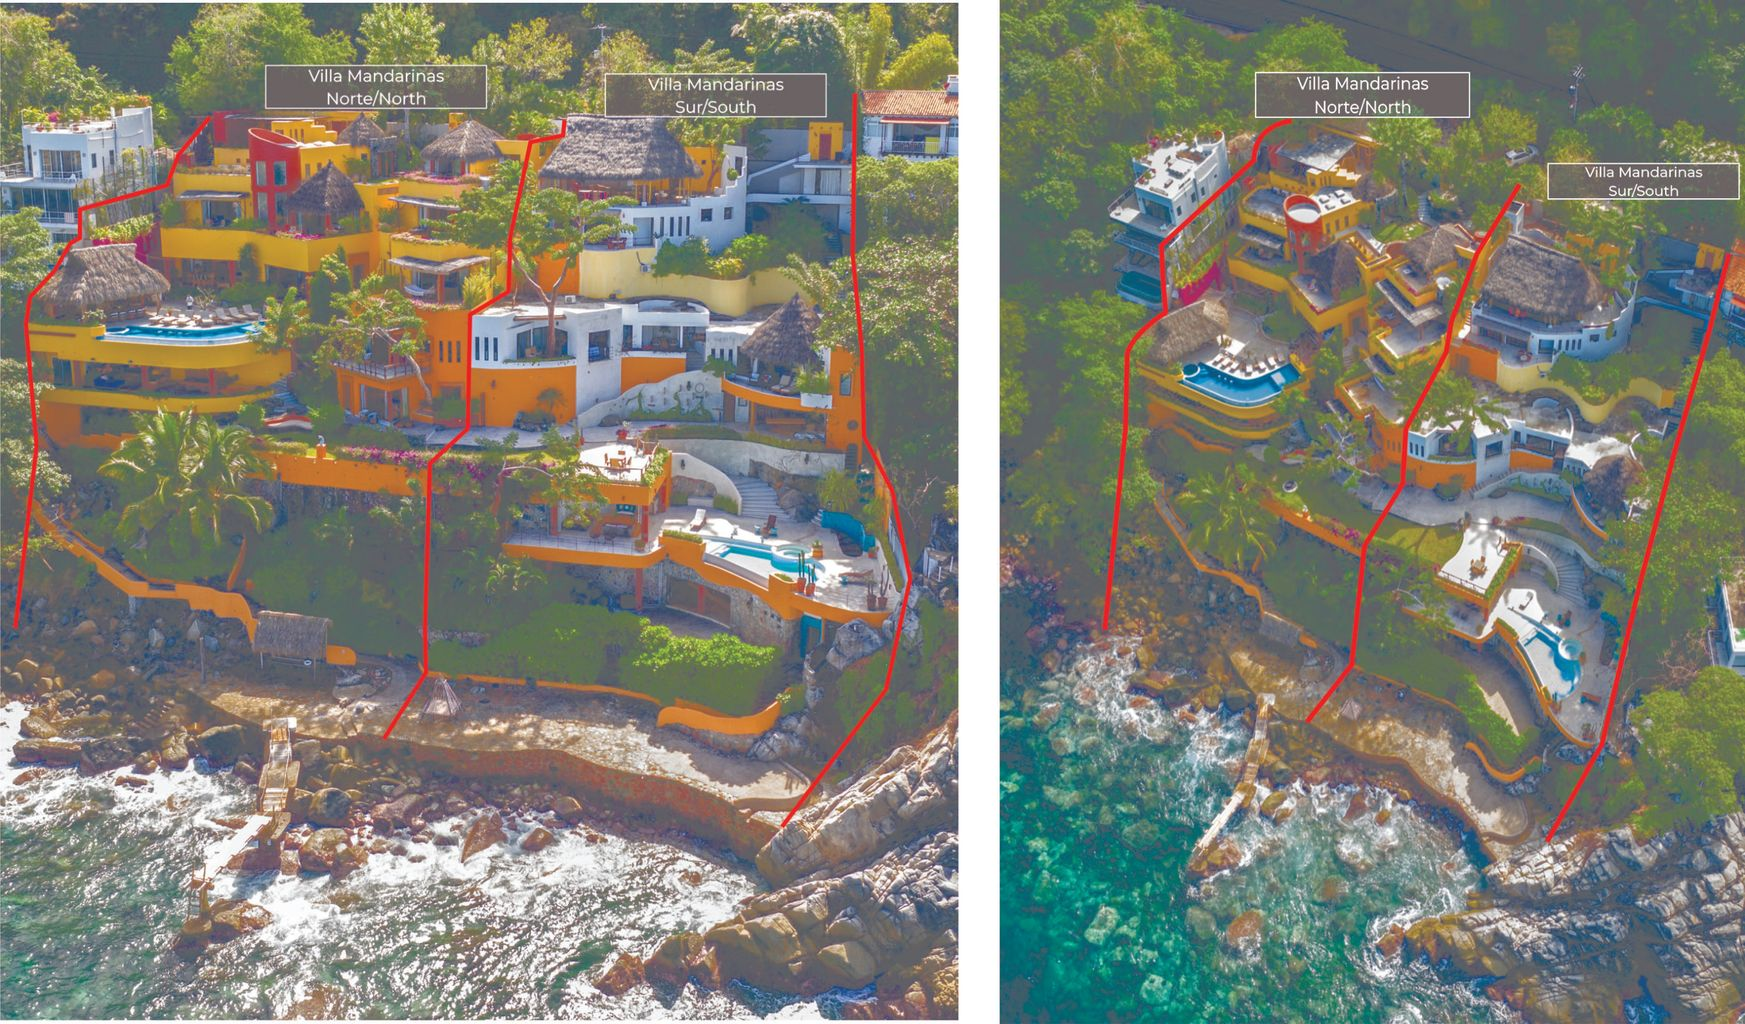 Red lines indicate the separation of both properties. Large villa is listed for sale.